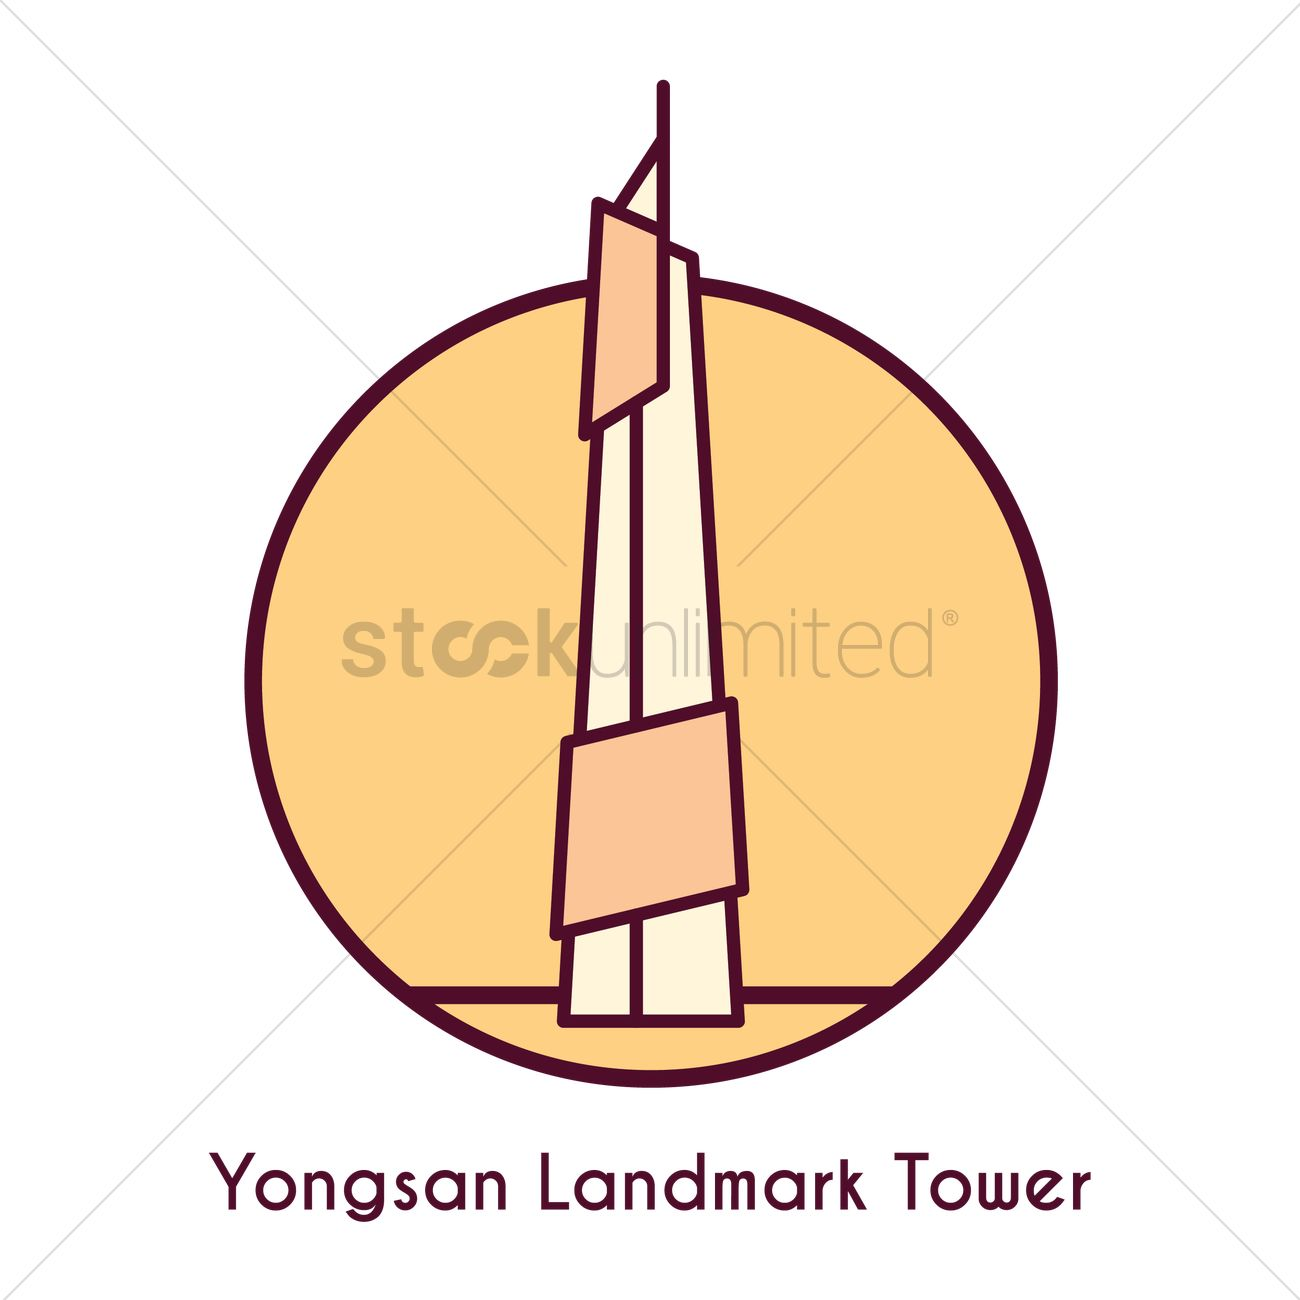 Yongsan landmark tower Vector Image.